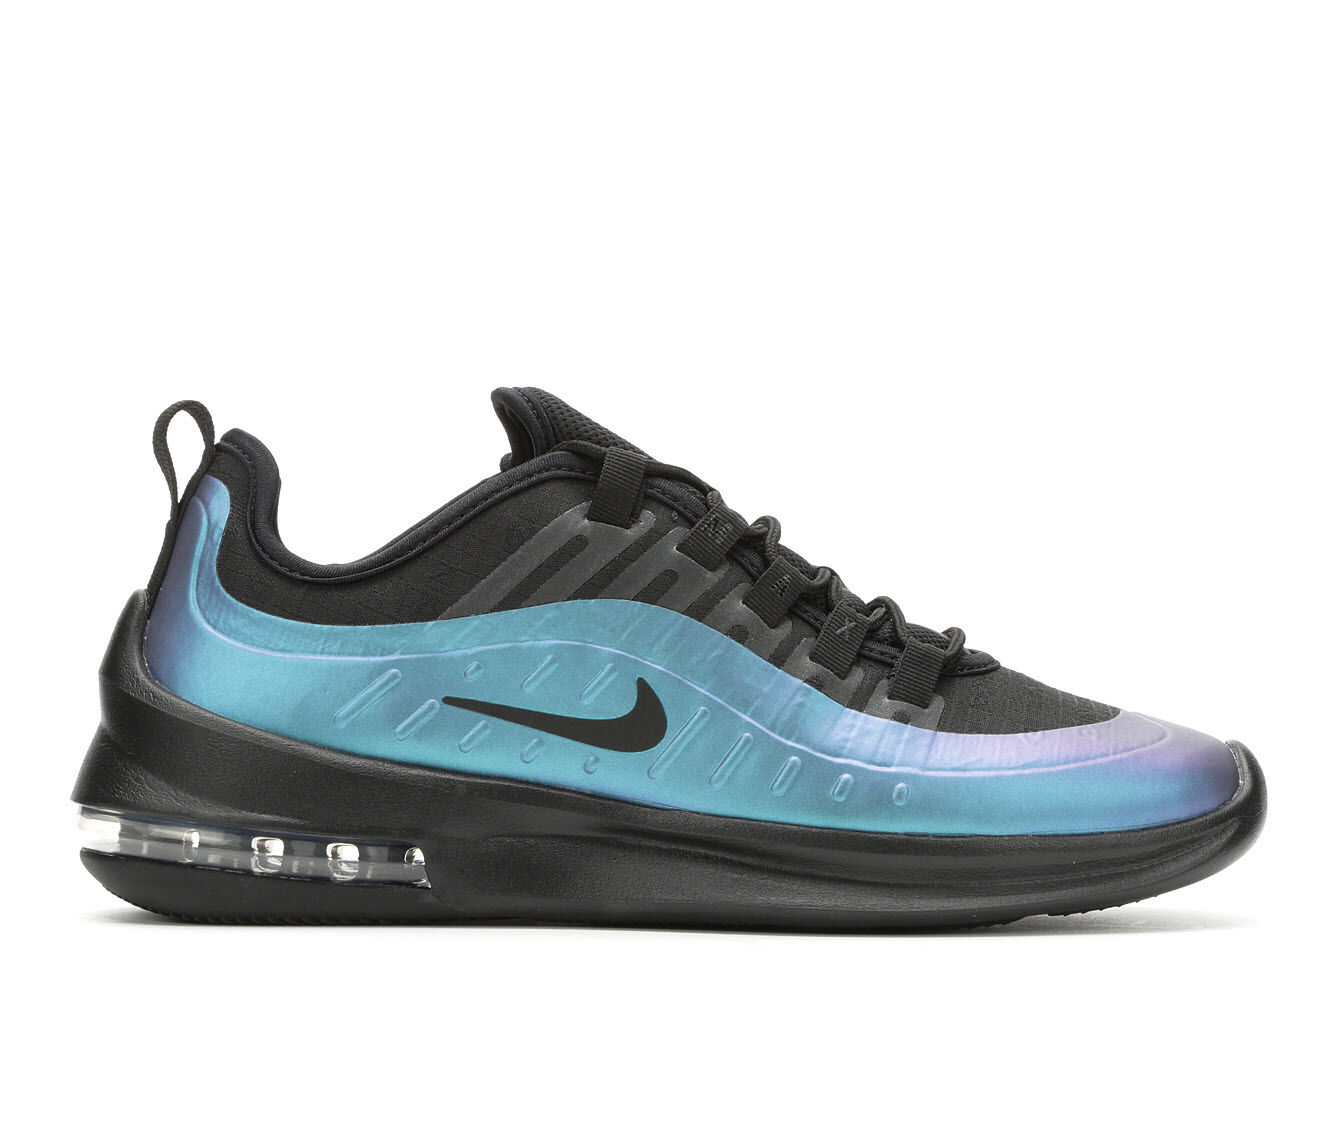 Men's Nike Air Max Axis Premium Sneakers